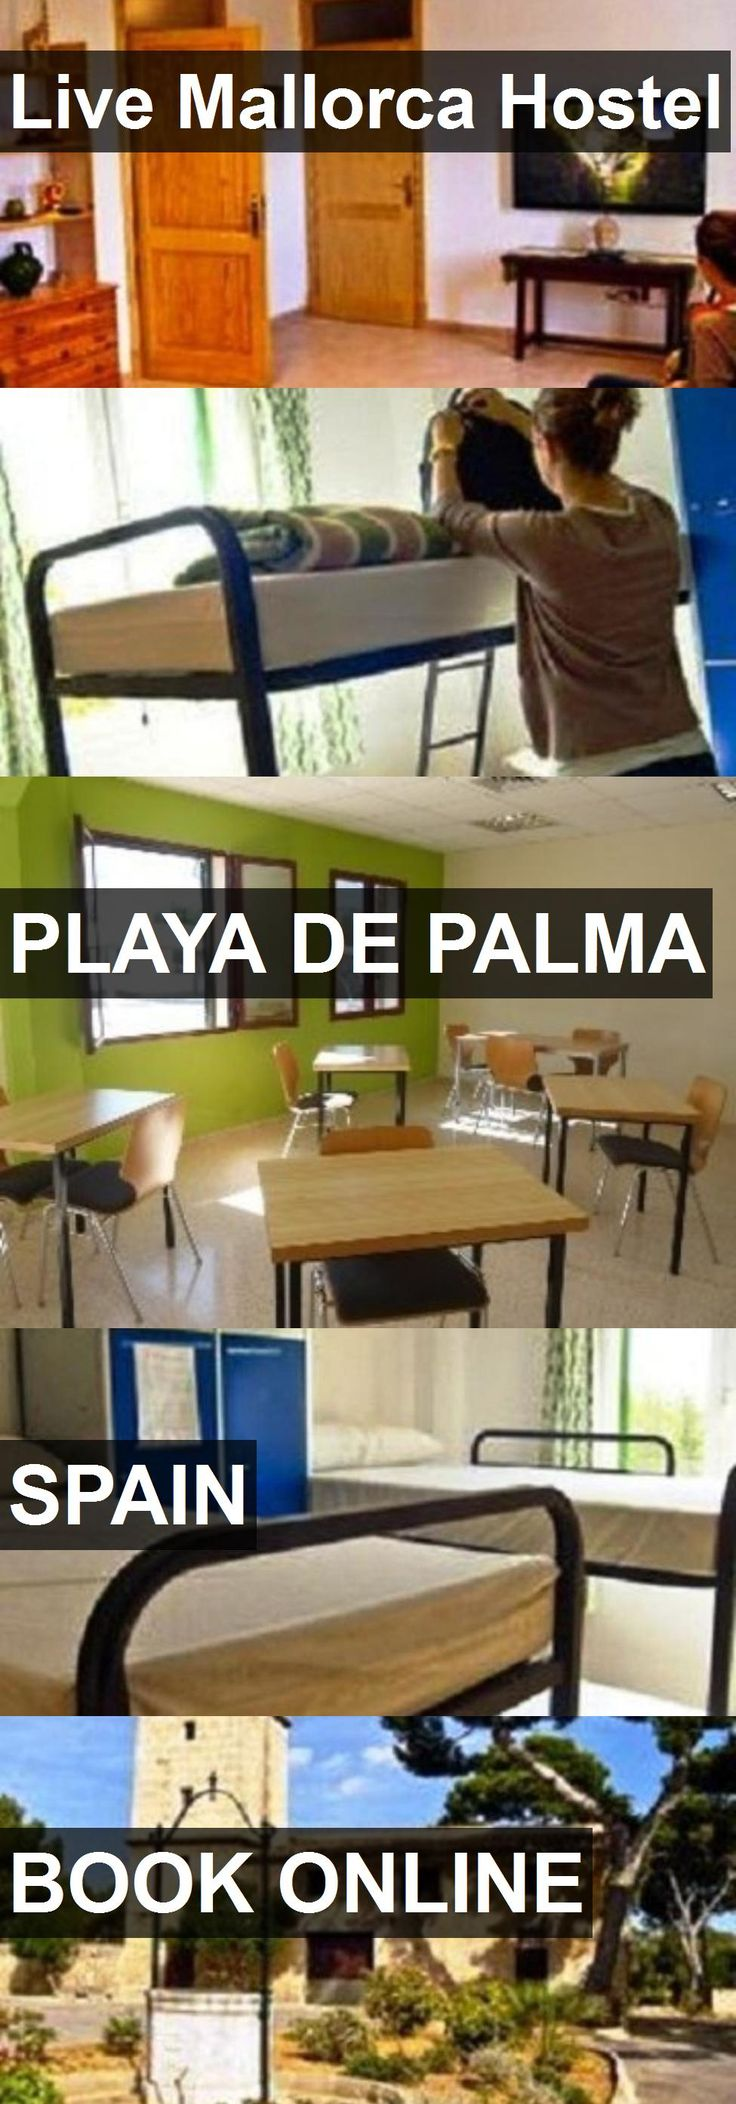 Hotel Live Mallorca Hostel in Playa de Palma, Spain. For more information, photos, reviews and best prices please follow the link. #Spain #PlayadePalma #hotel #travel #vacation